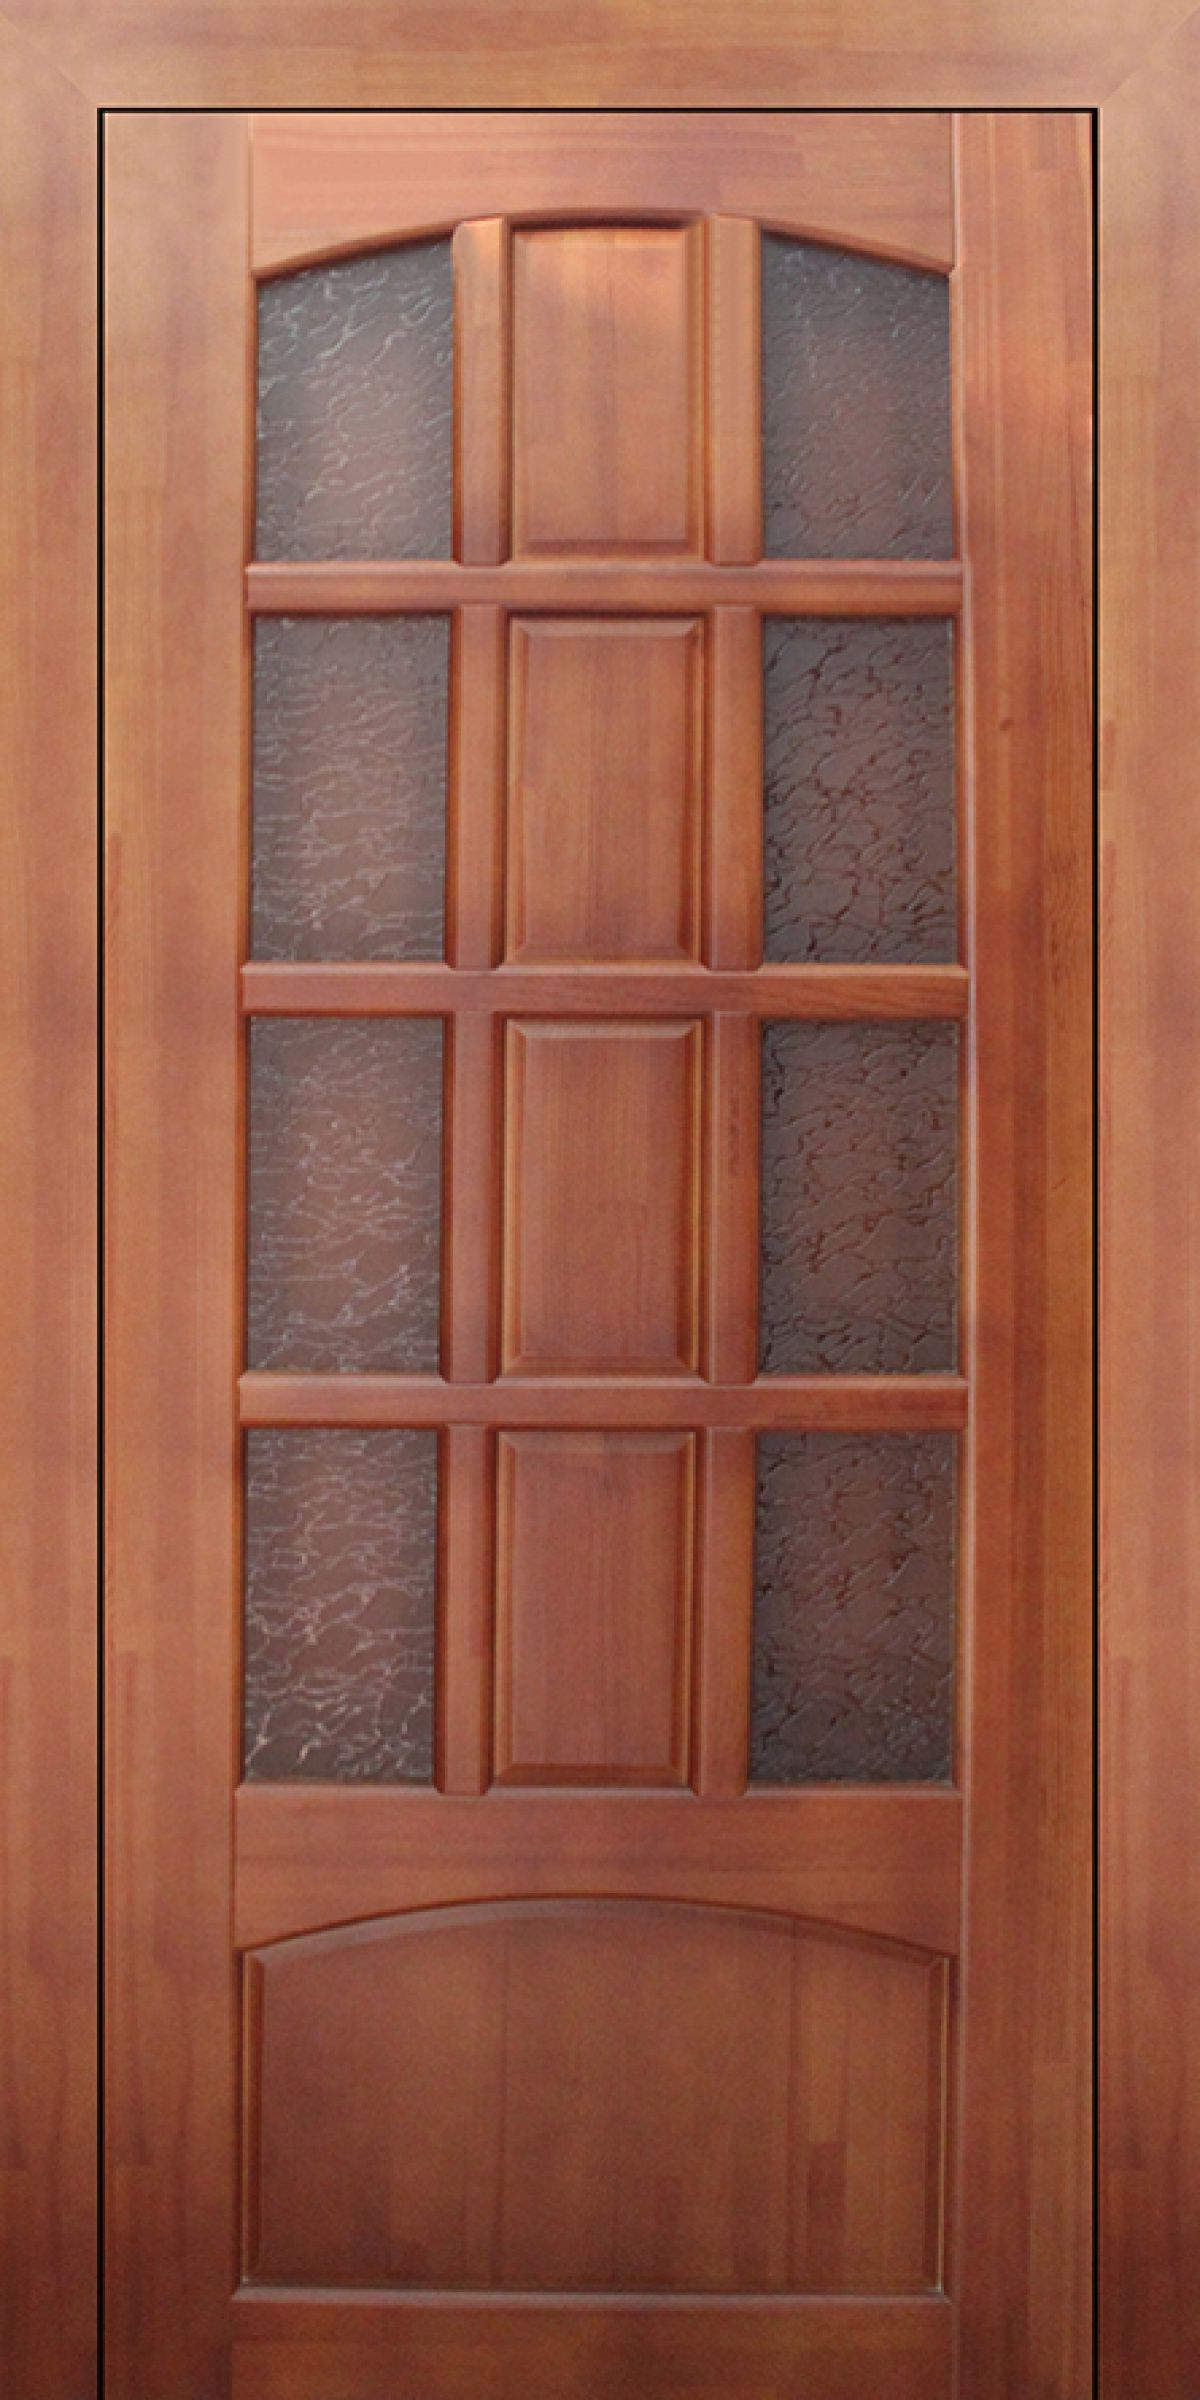 Large wooden pocket interior doors and blue walls in the room for Hardwood doors